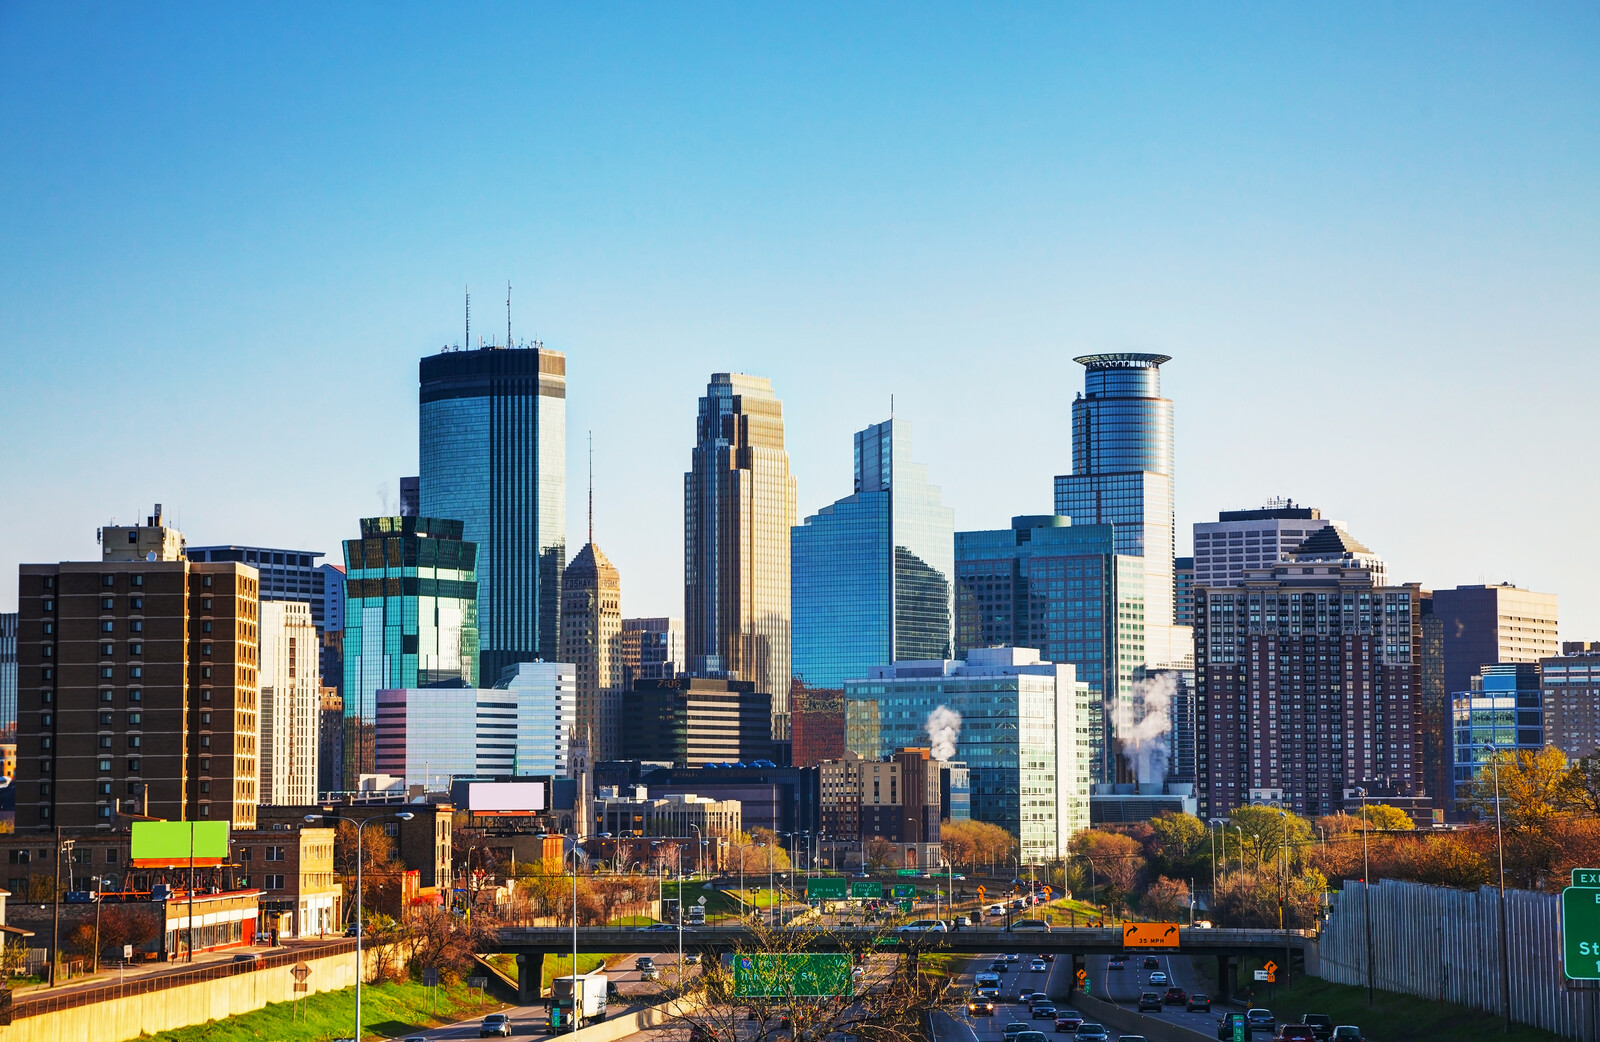 Downtown Minneapolis, in the morning with blue skies backing the minneapolis skyline